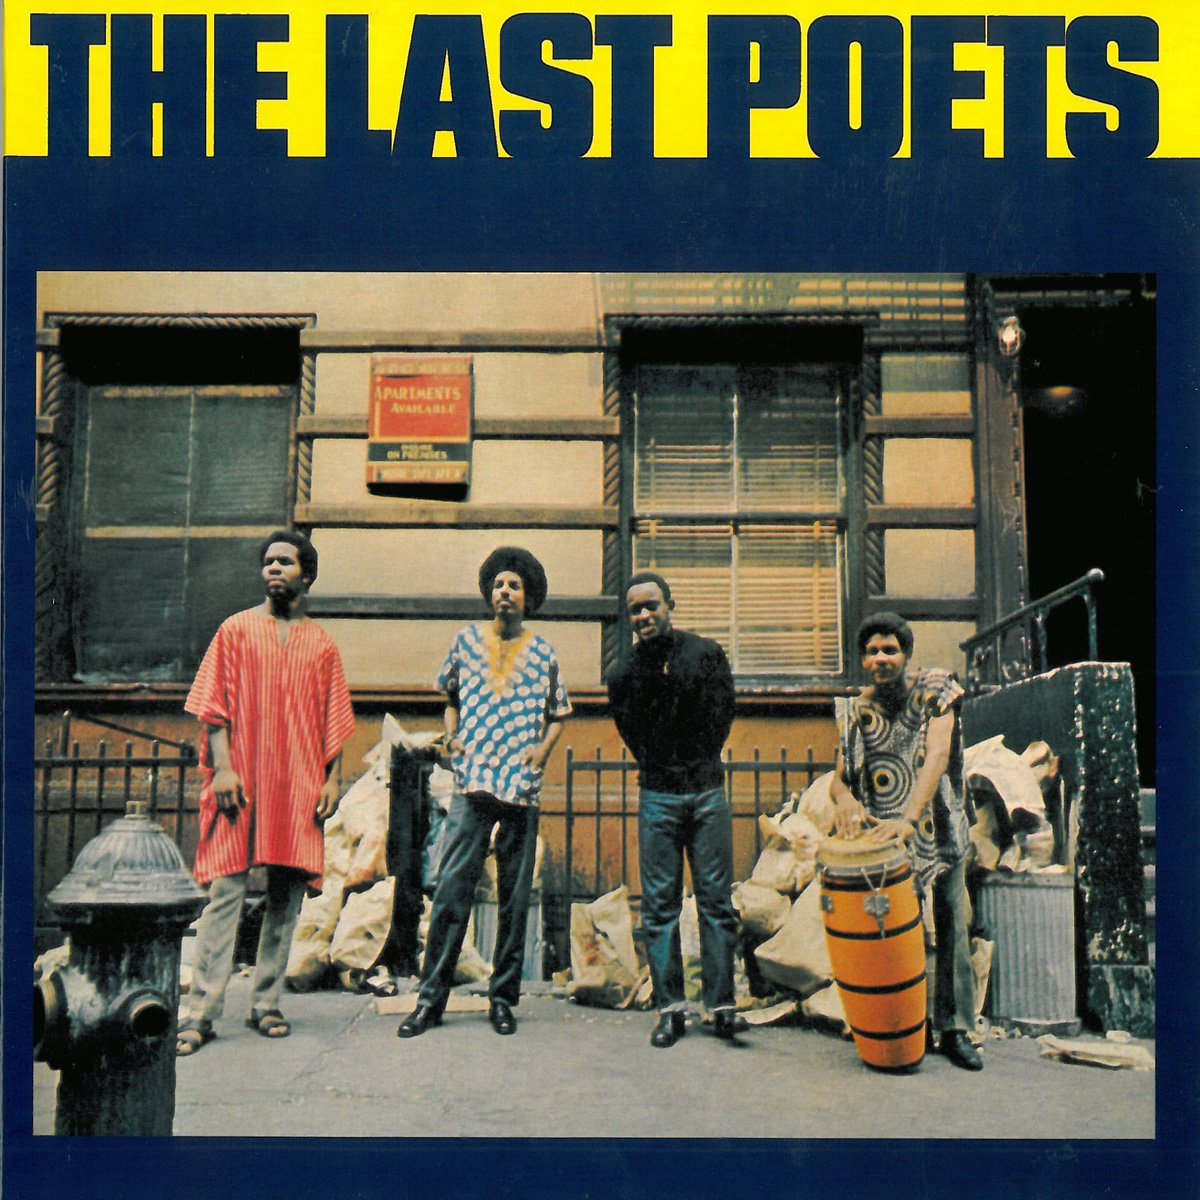 The Last Poets [12 inch Analog]                                                                                                                                                                                                                                                    <span class=